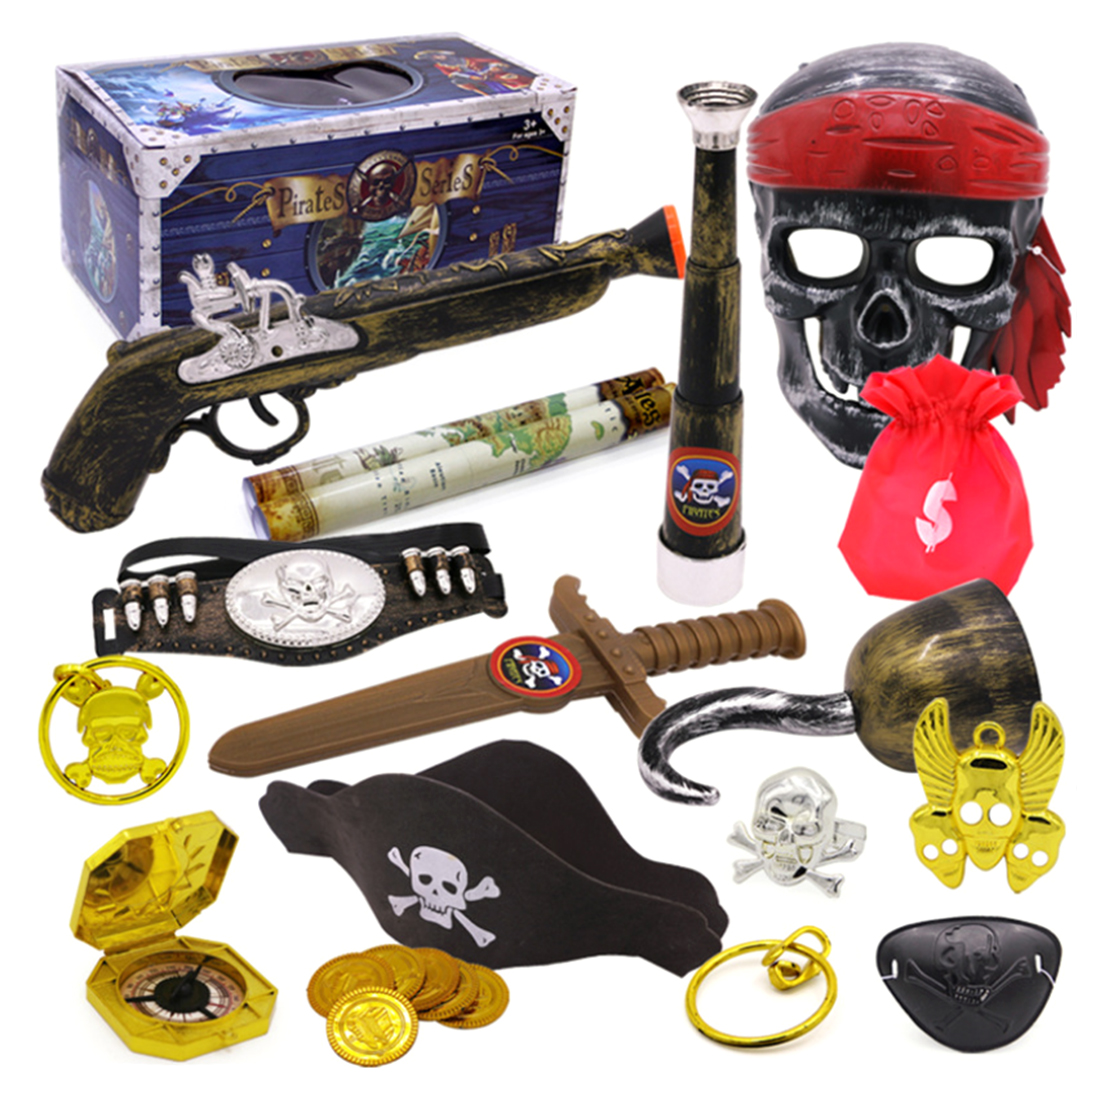 Pirate Theme Toys Supplier Party Toy Decoration Set  Dress Up Toy Treasure Box Type B Children Age 3+ Birthday Gift Kid's Party